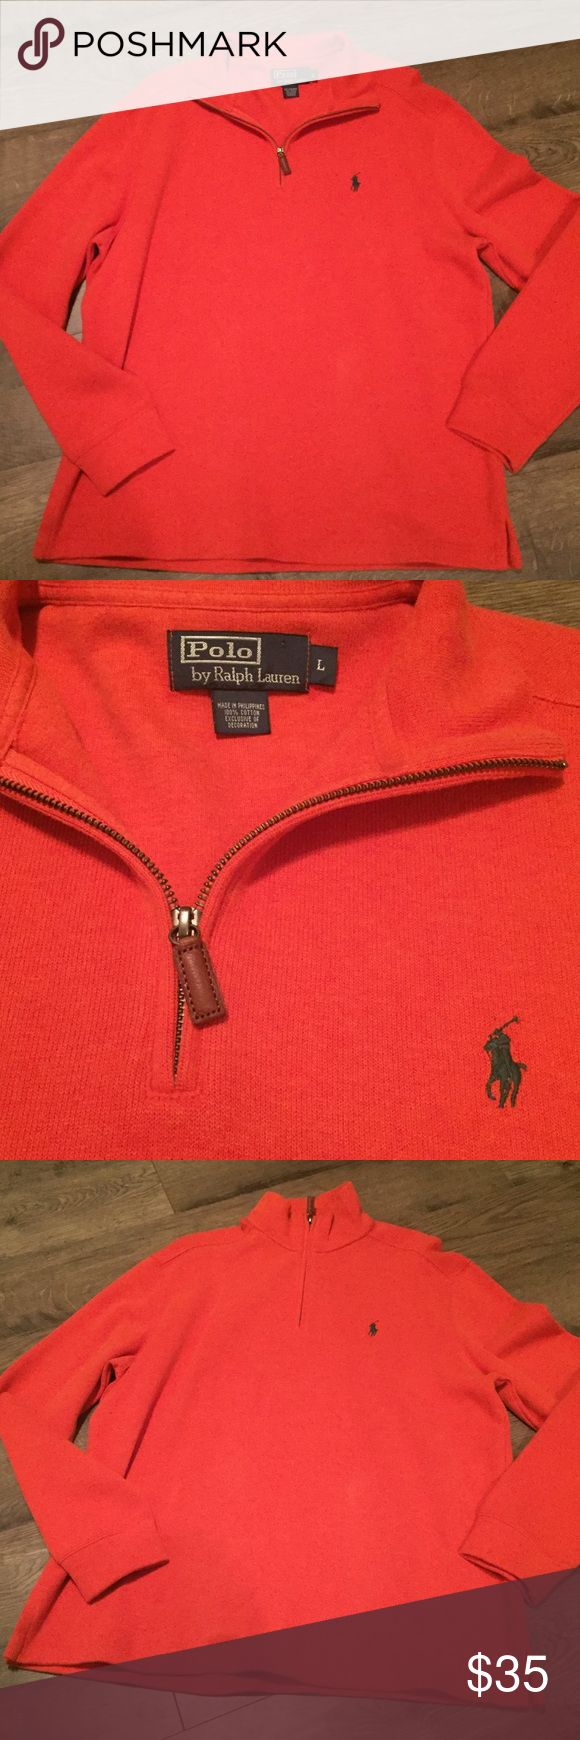 Polo Ralph Lauren Men's Half-Zip Sweater Bright orange sweater/green logo Polo by Ralph Lauren Sweaters Zip Up